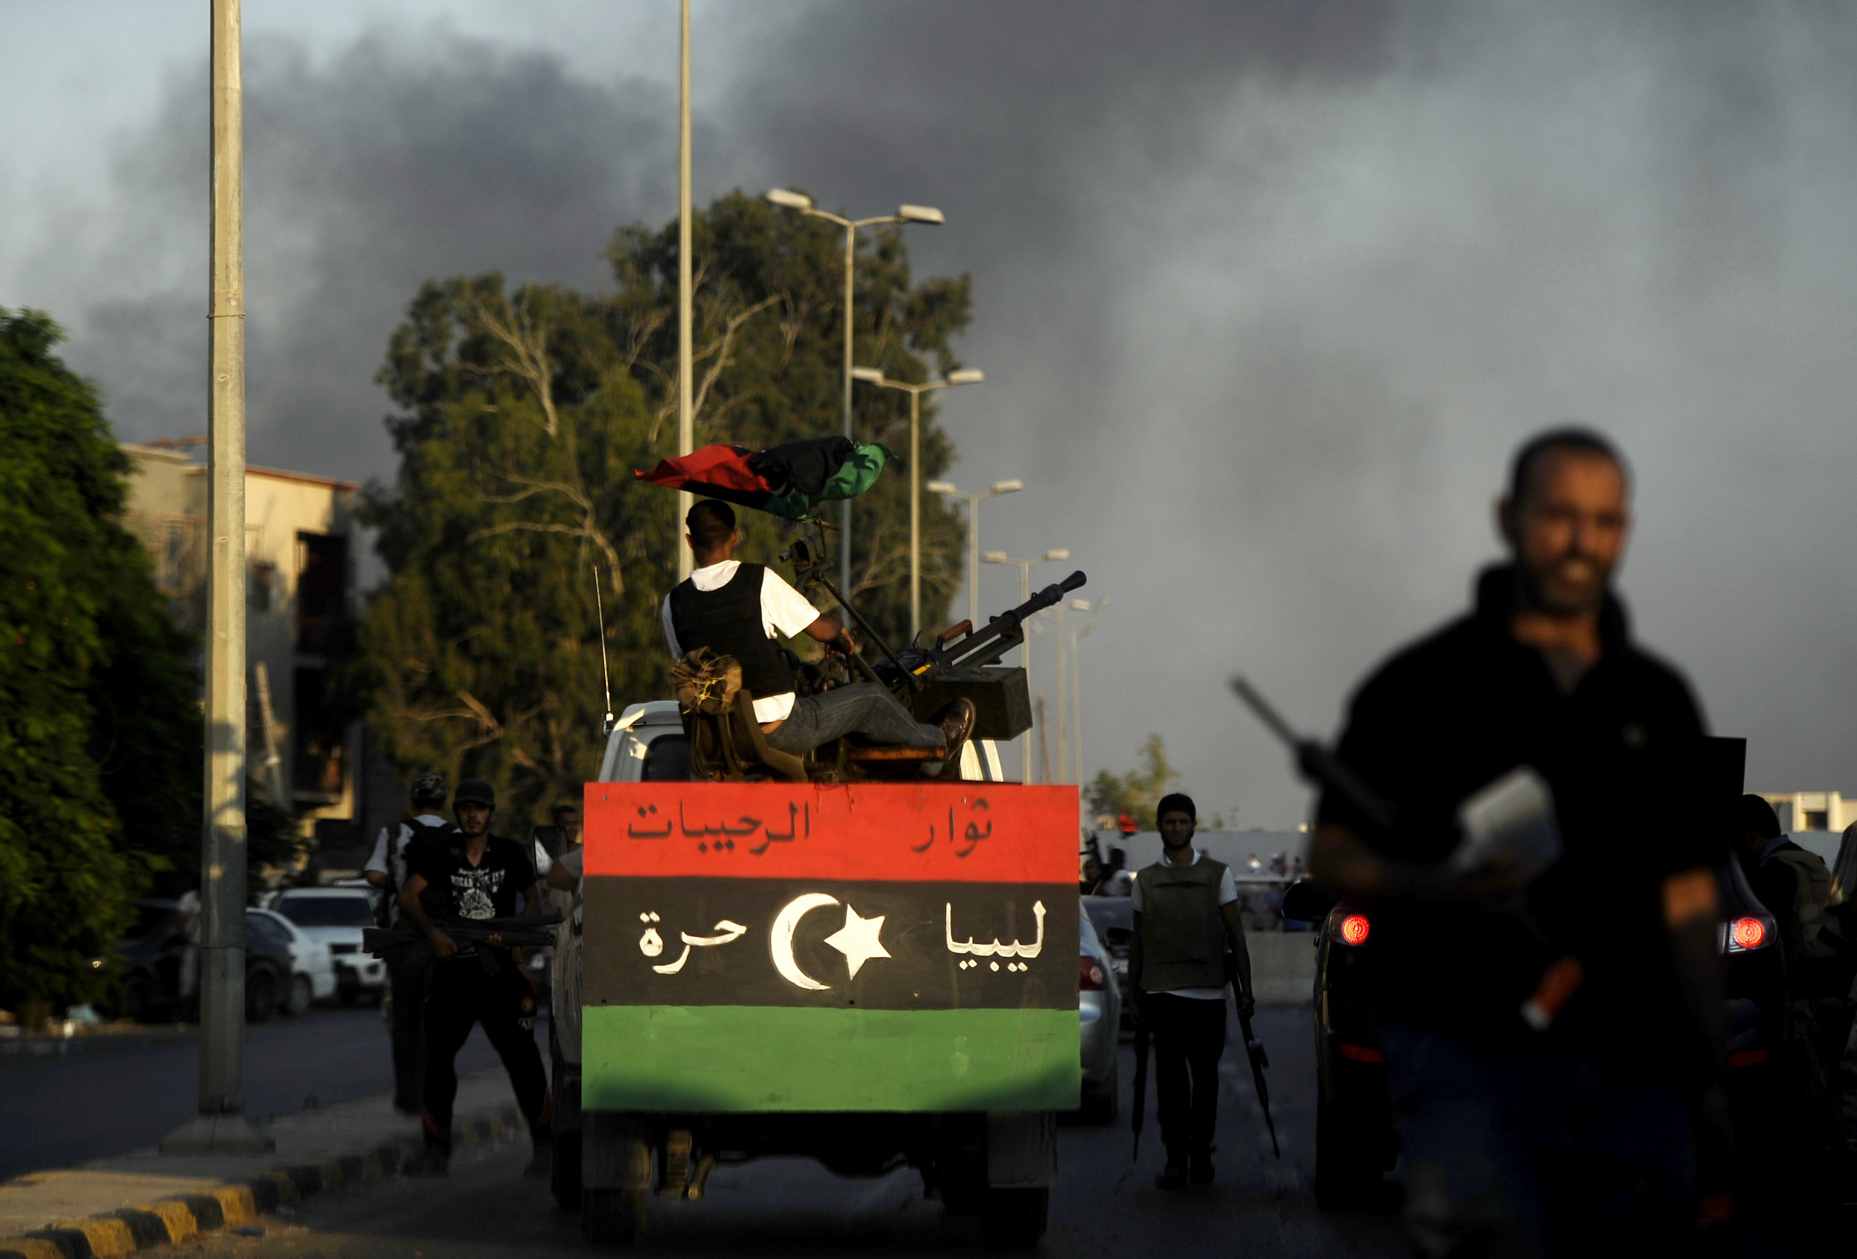 Latest developments in Libya